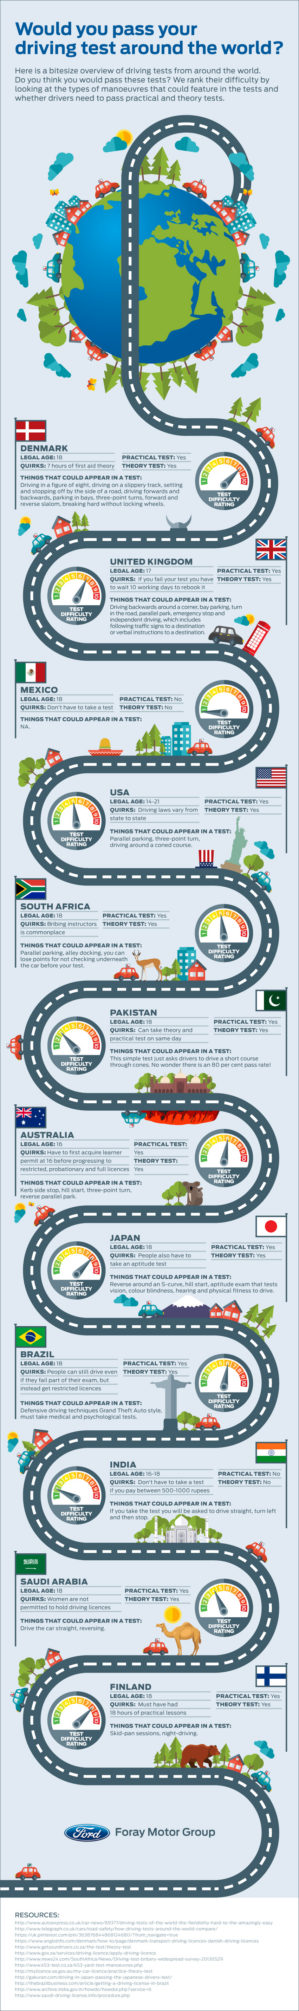 Would You Pass Your Driving Test Around the World infographic